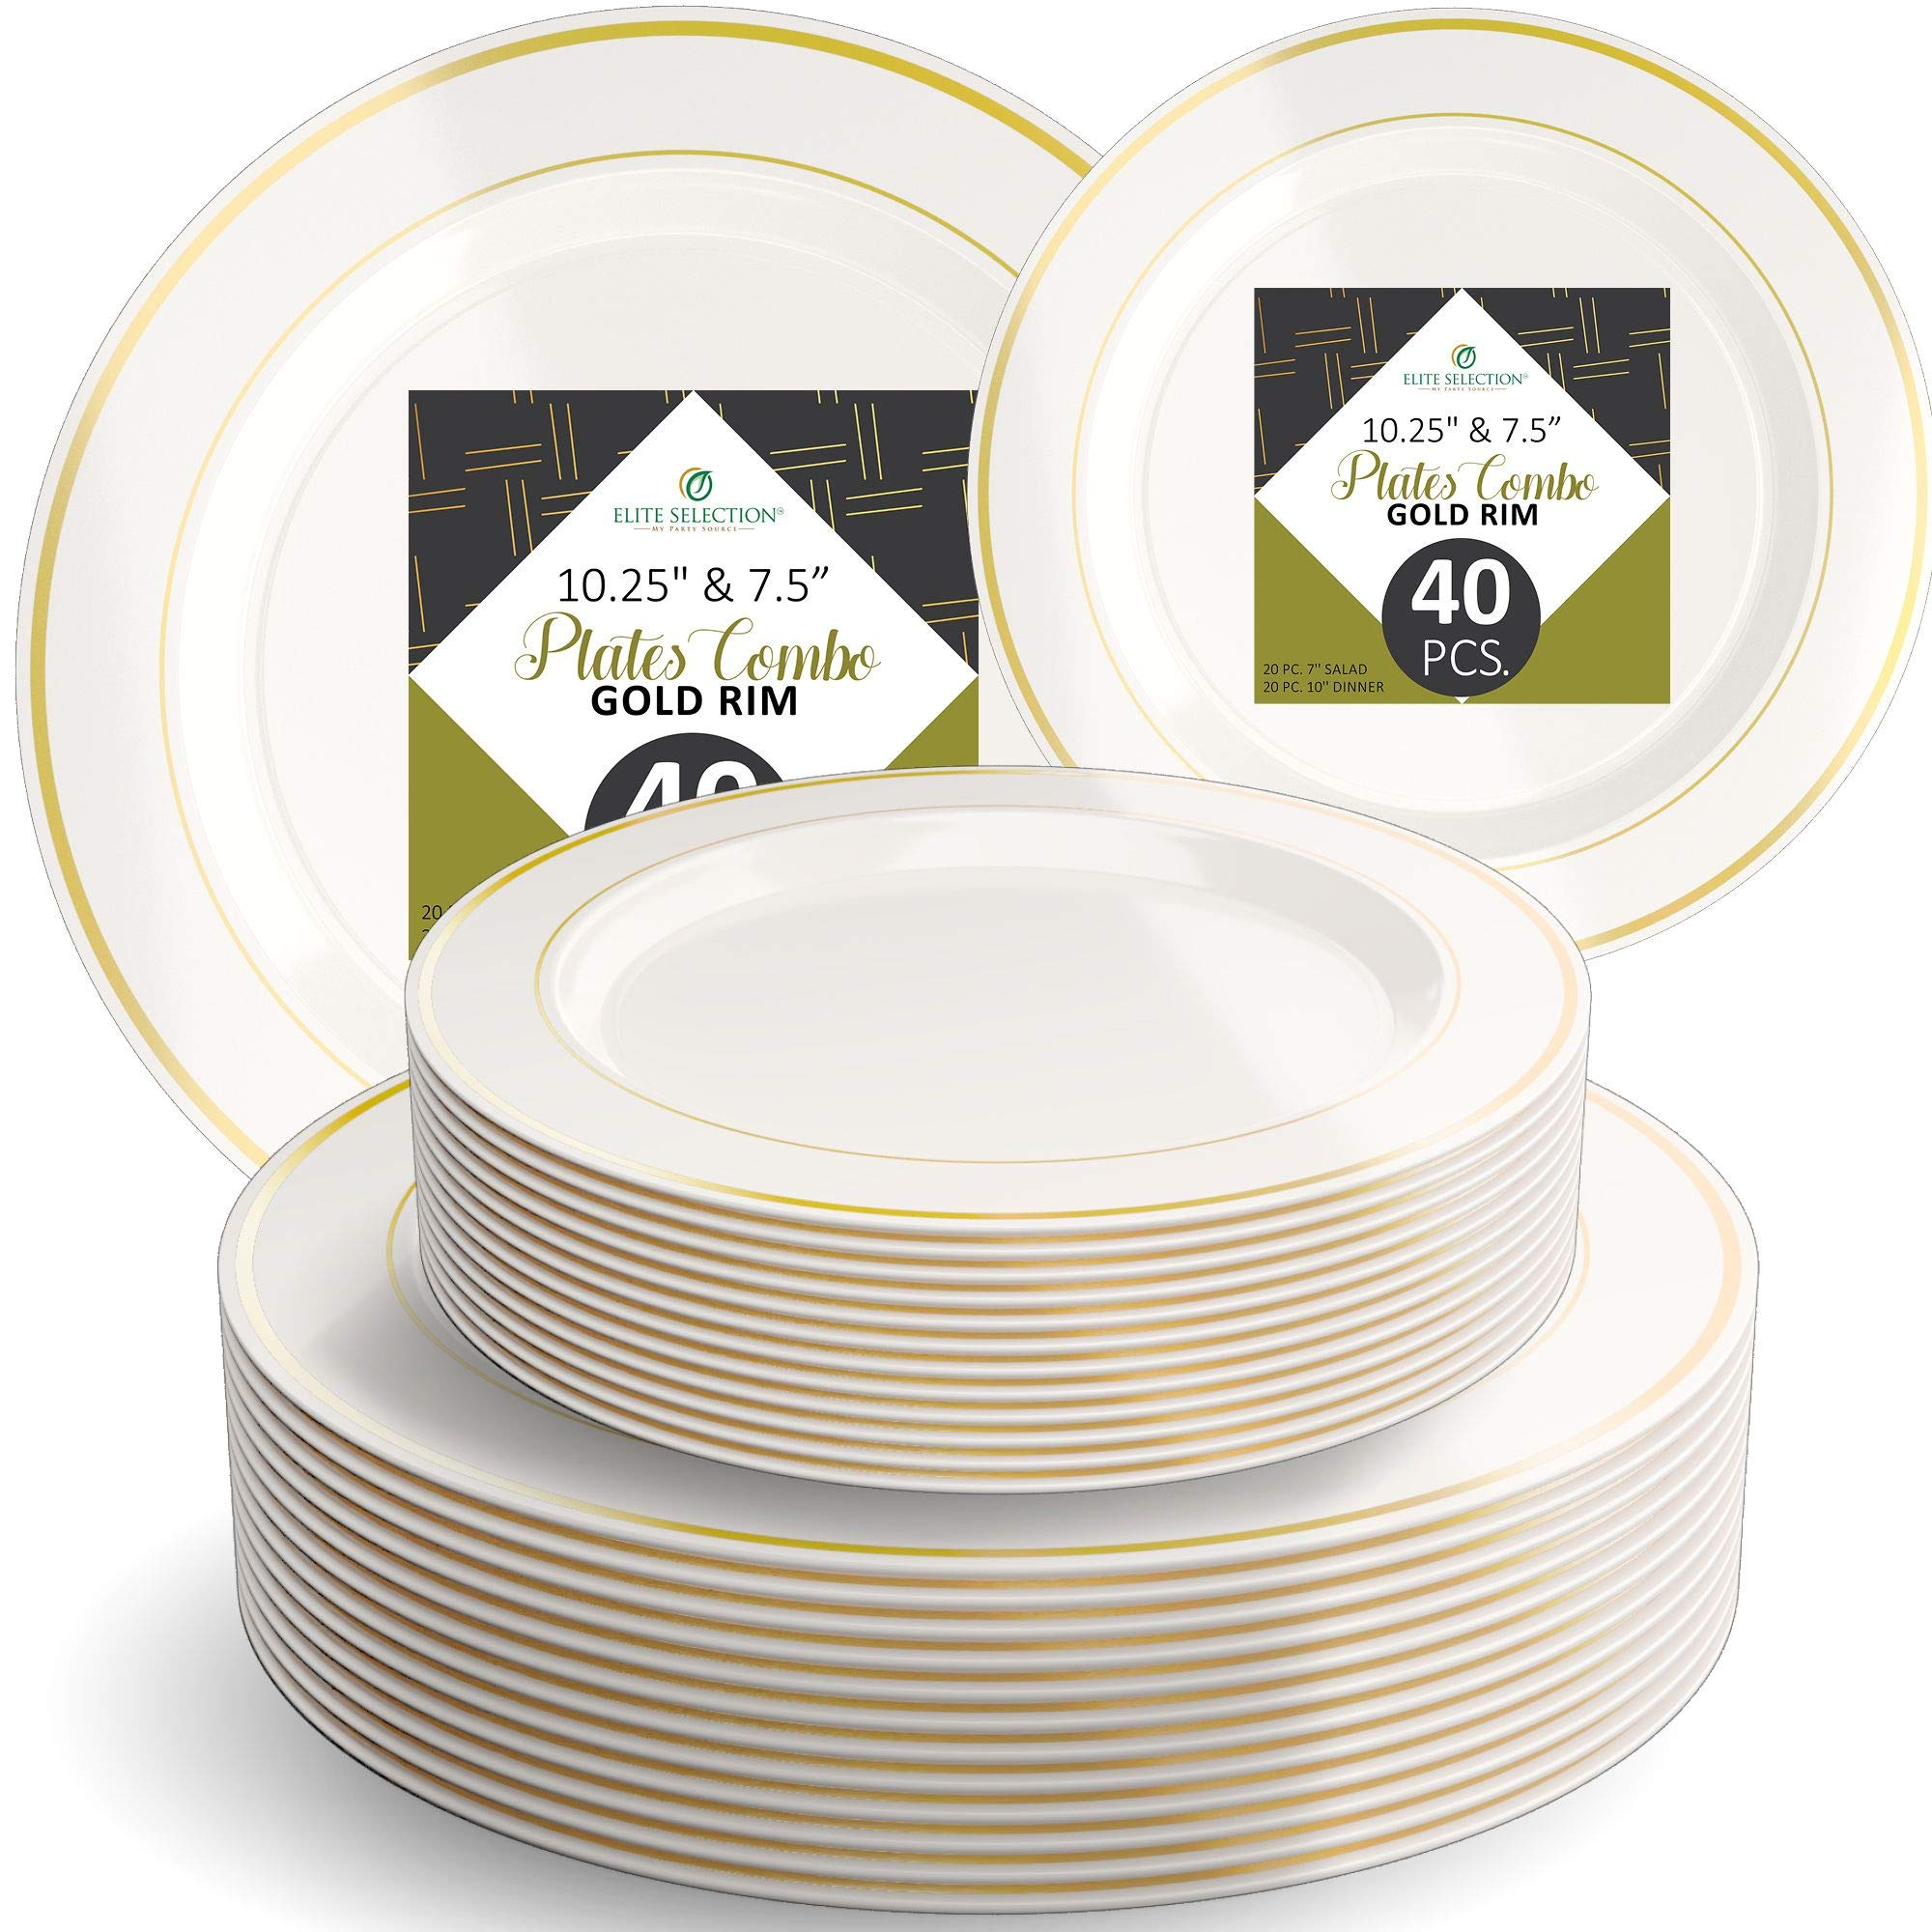 Disposable Plastic Plate Set - 40 Pack Cream Dinnerware with 10.25'' Dinner and 7.5'' Salad Plate with Elegant Gold Double Trim for Wedding, Birthday, Party - by Elite Selection by ELITE SELECTION